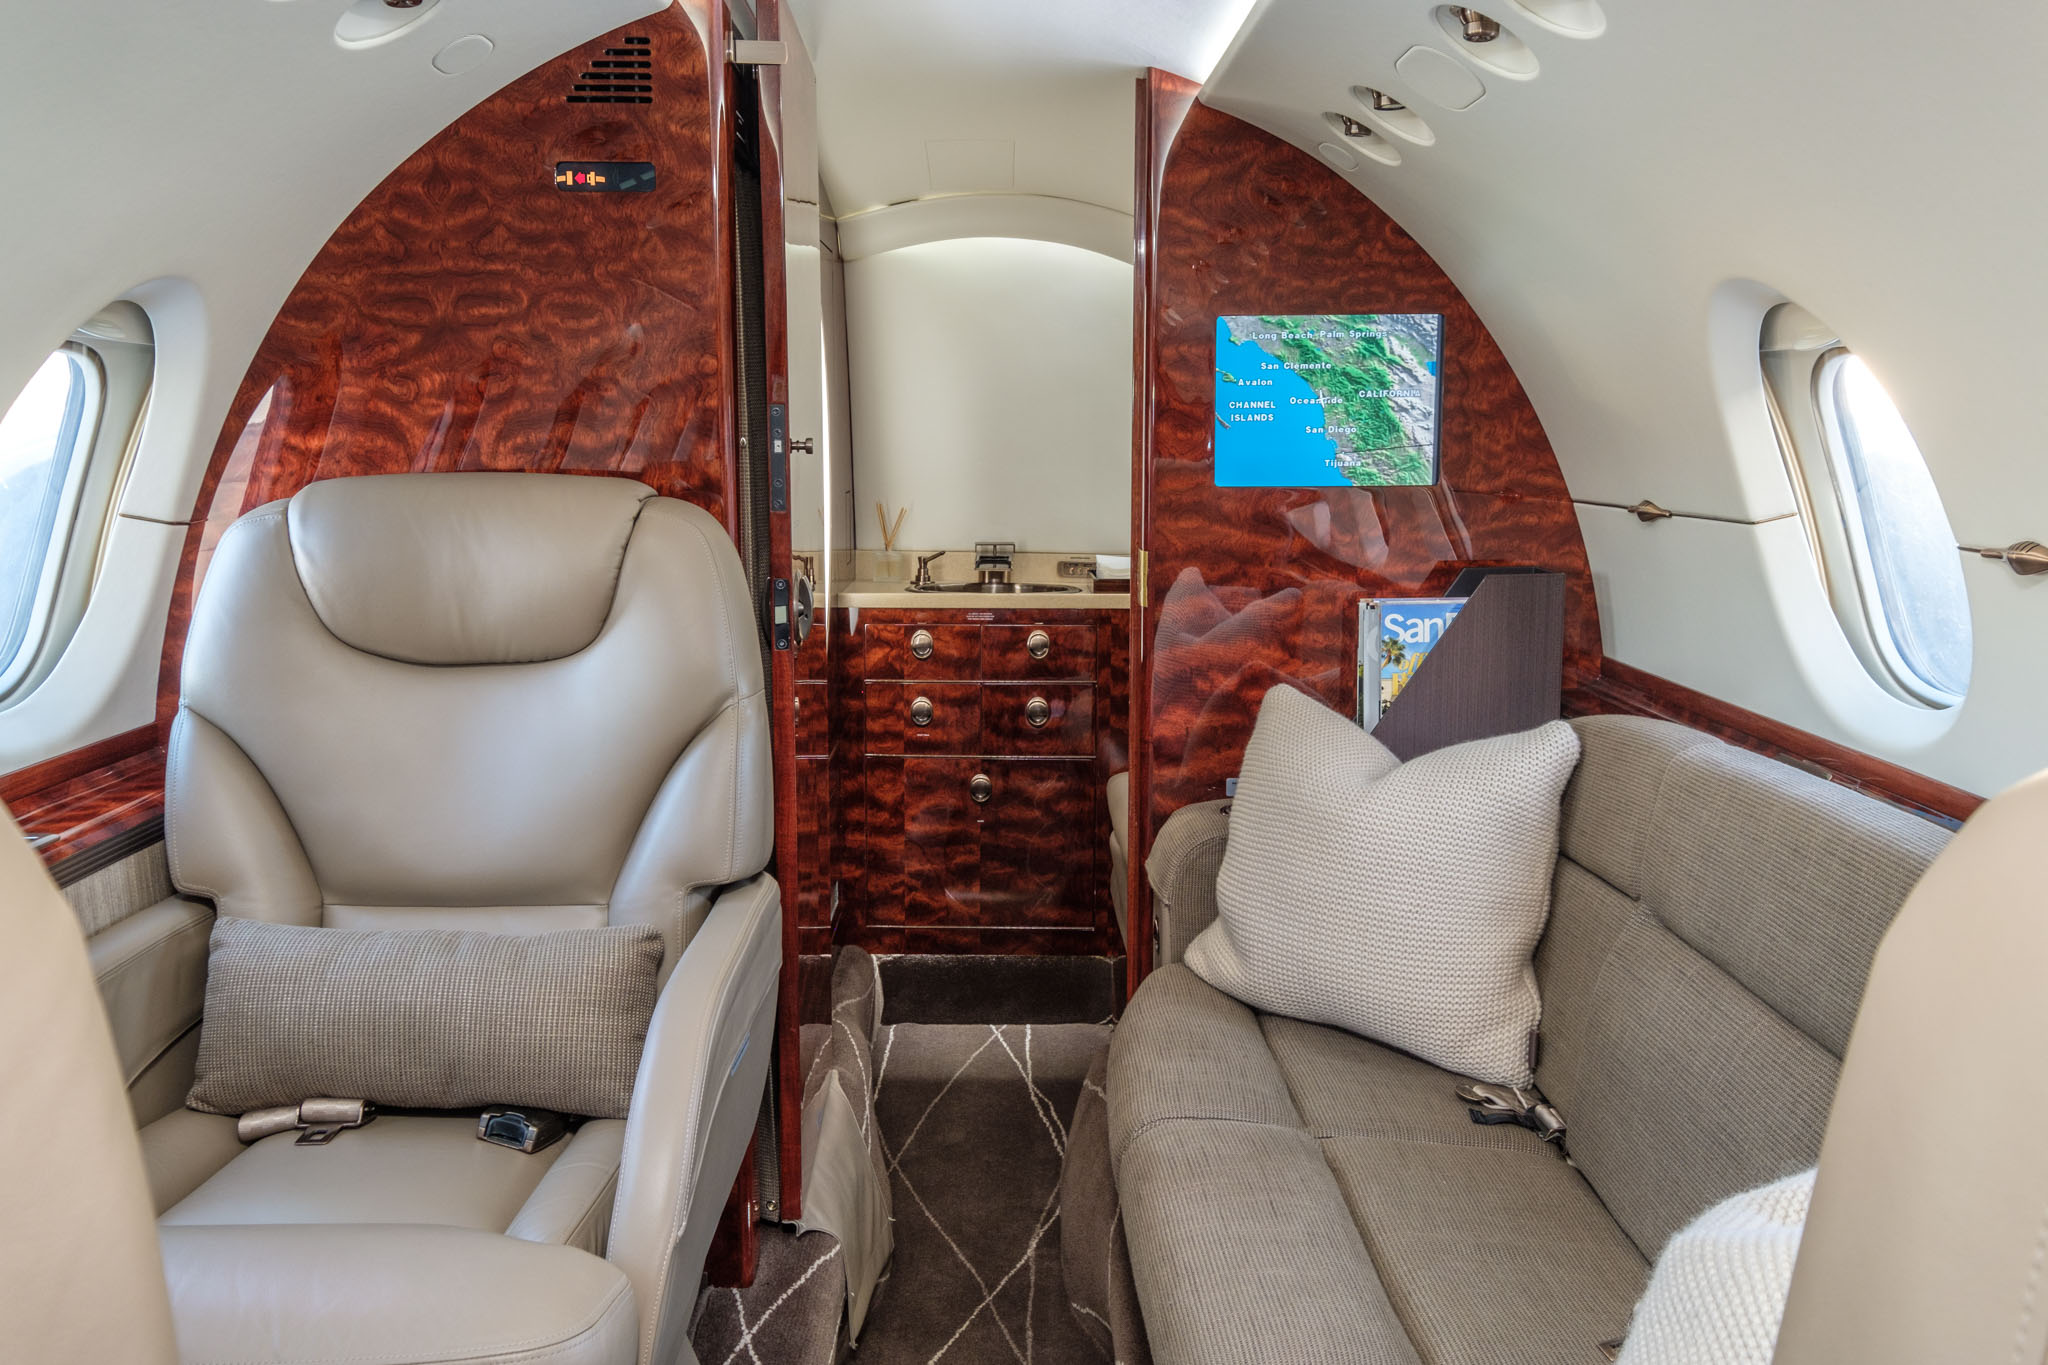 Schubach private charter plane interior